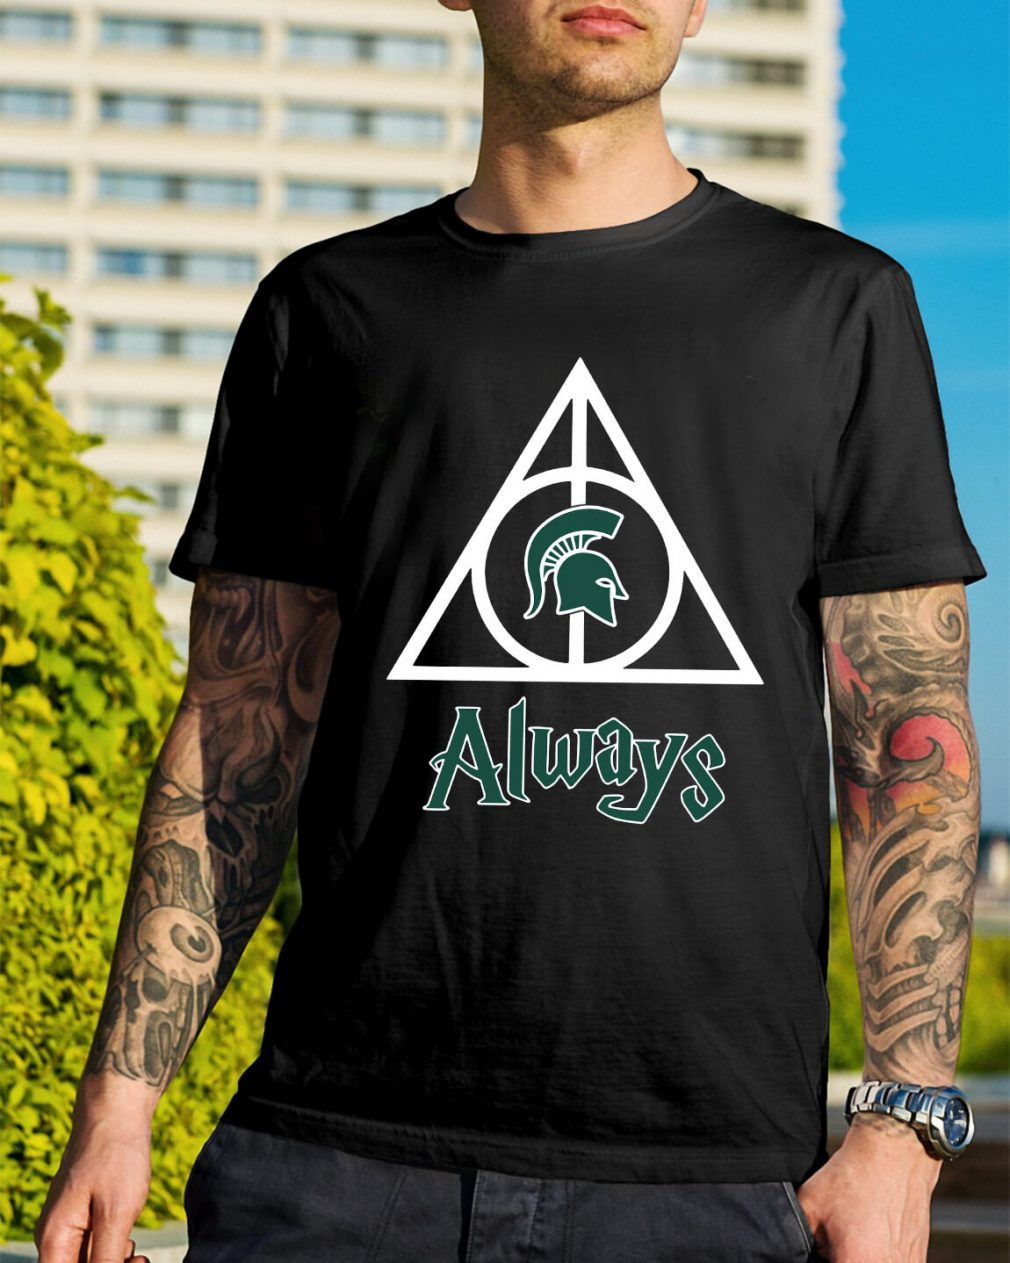 Michigan State Spartans Deathly Hallows always Harry Potter shirt